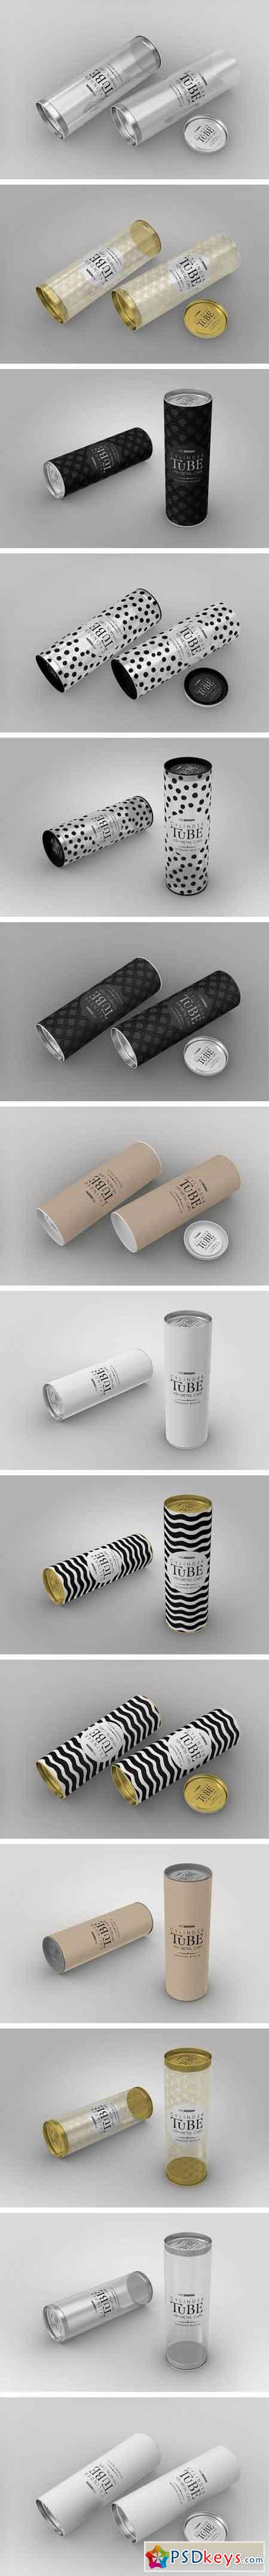 180mm Cylinder Tube Packaging Mock Up